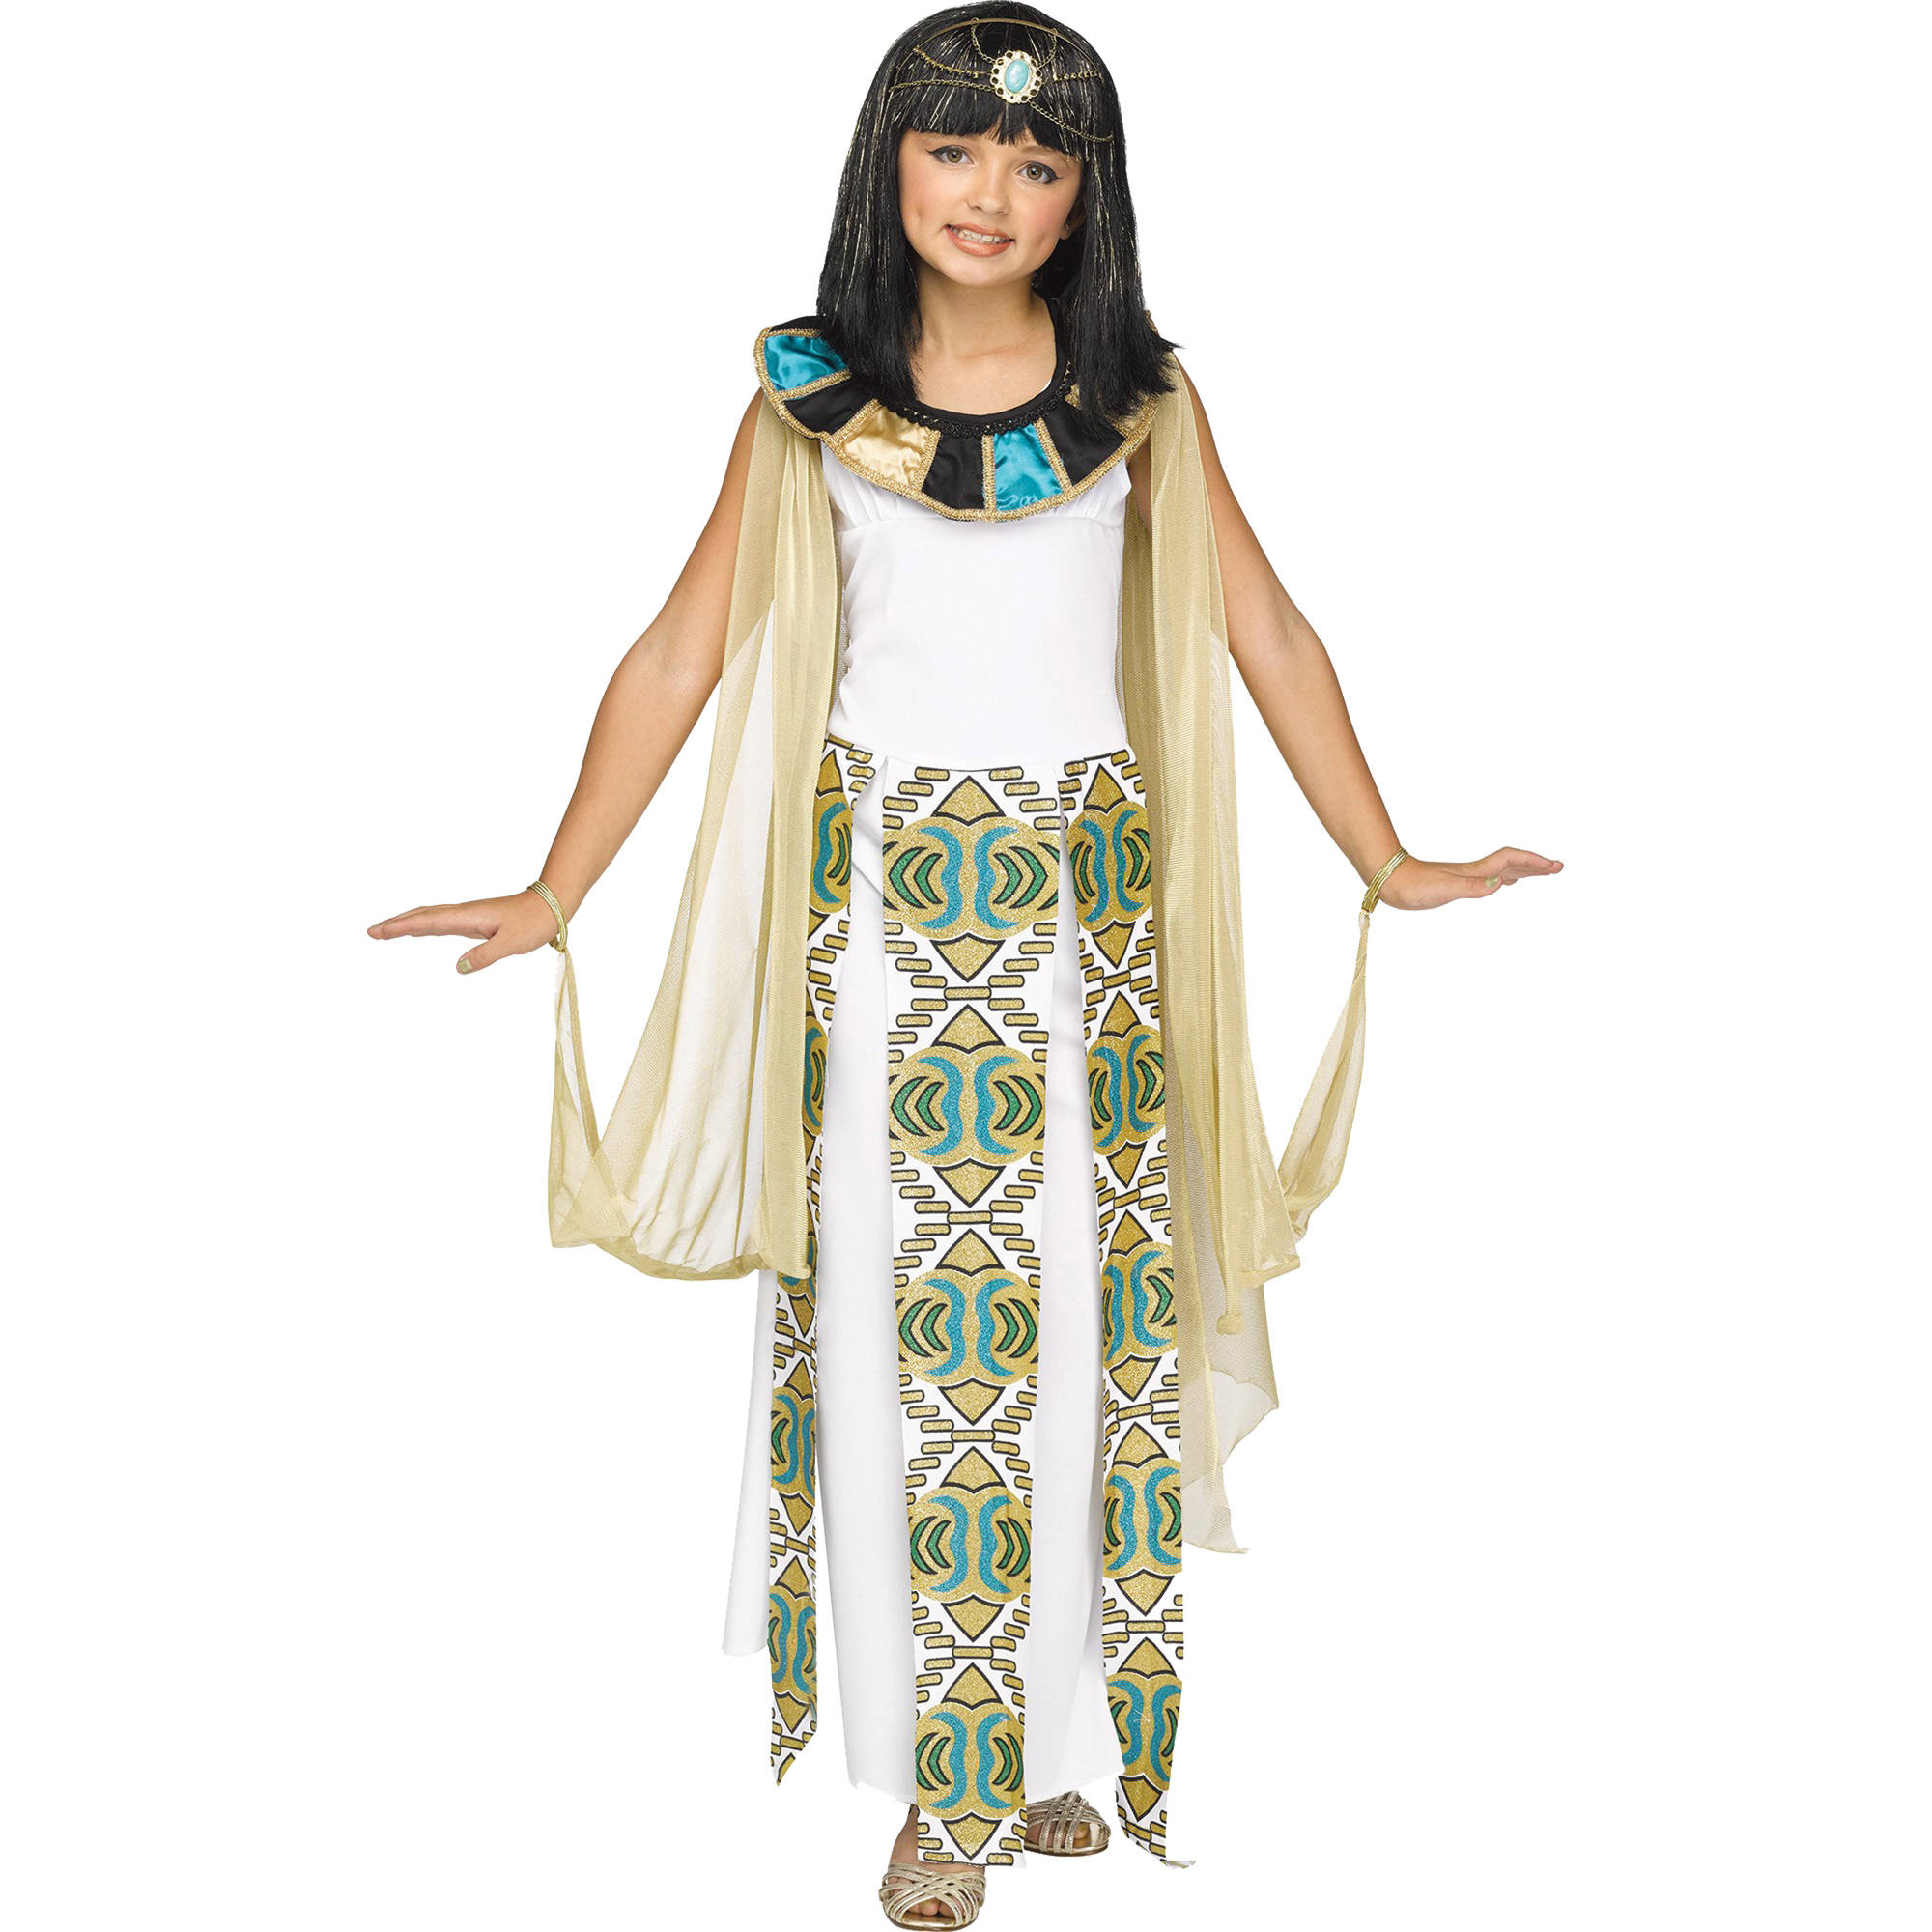 Cleopatra Girls Child Halloween Costume